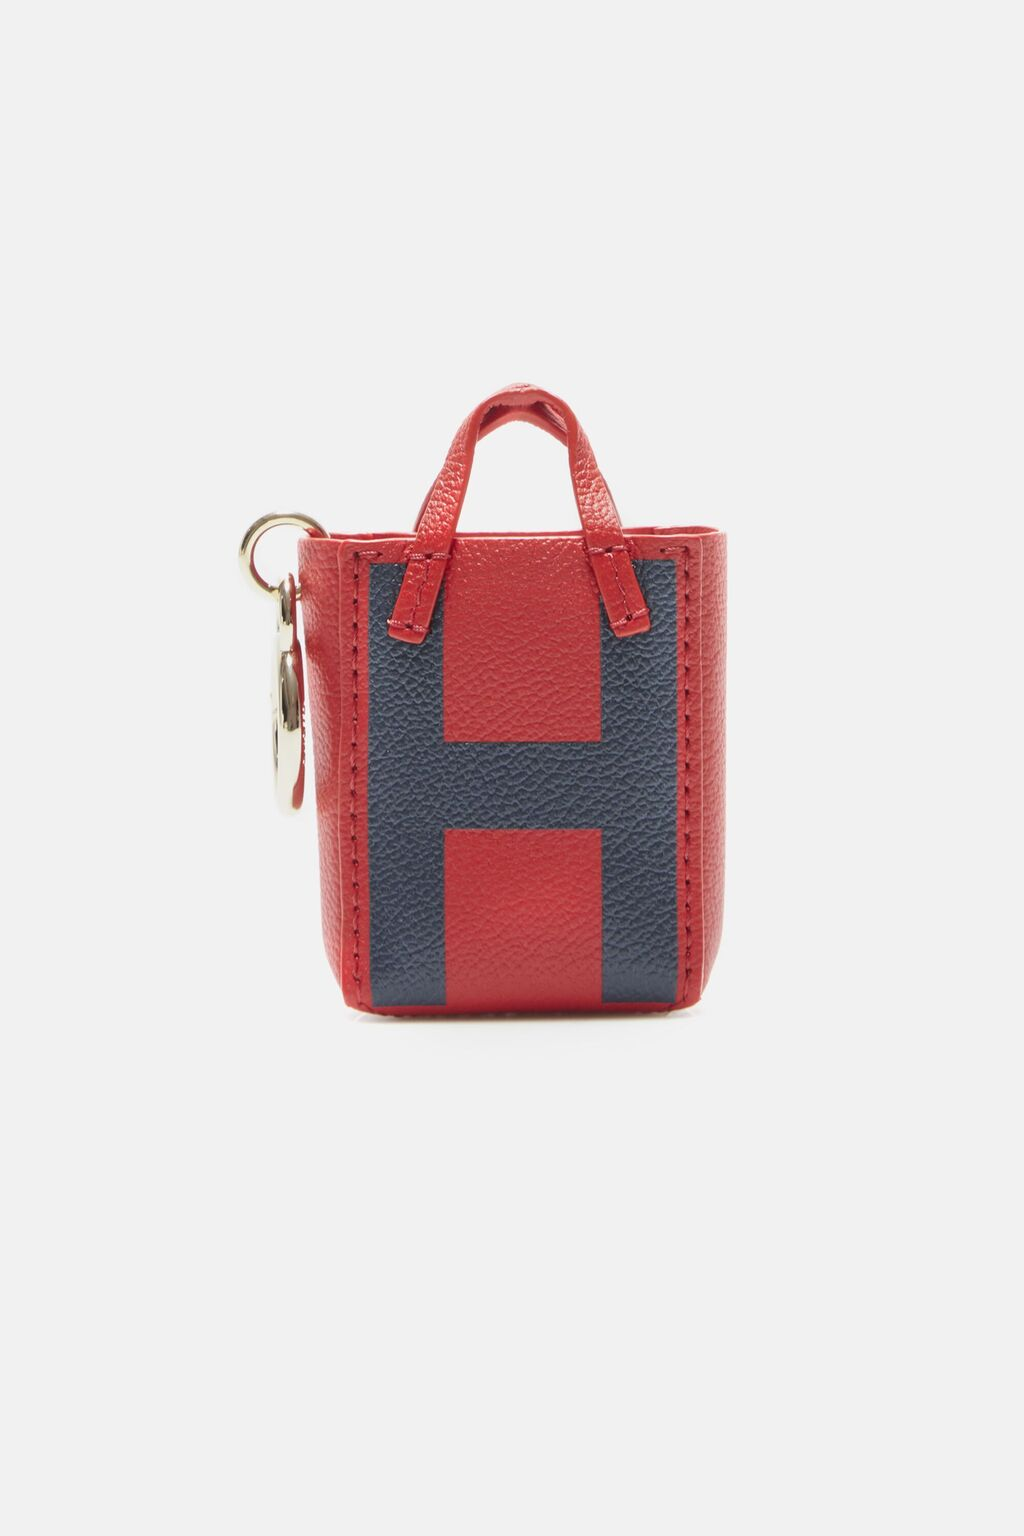 Letter H tote bag charm